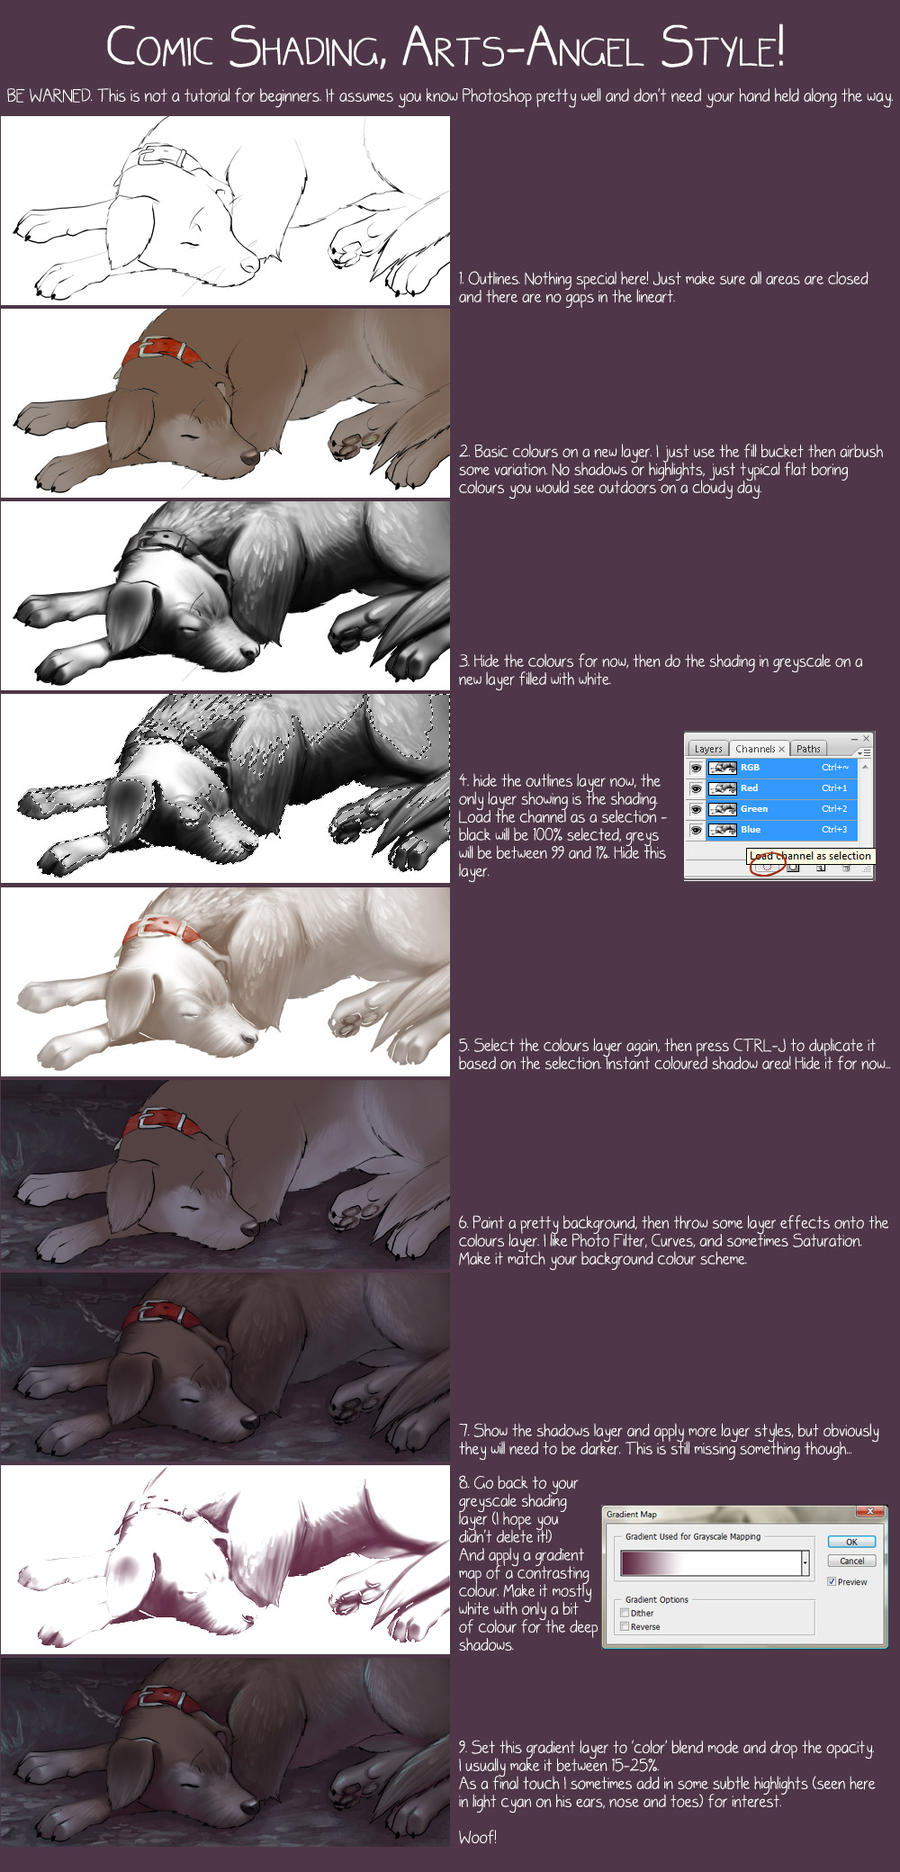 Smooth Comic Shading Tutorial by artsangel